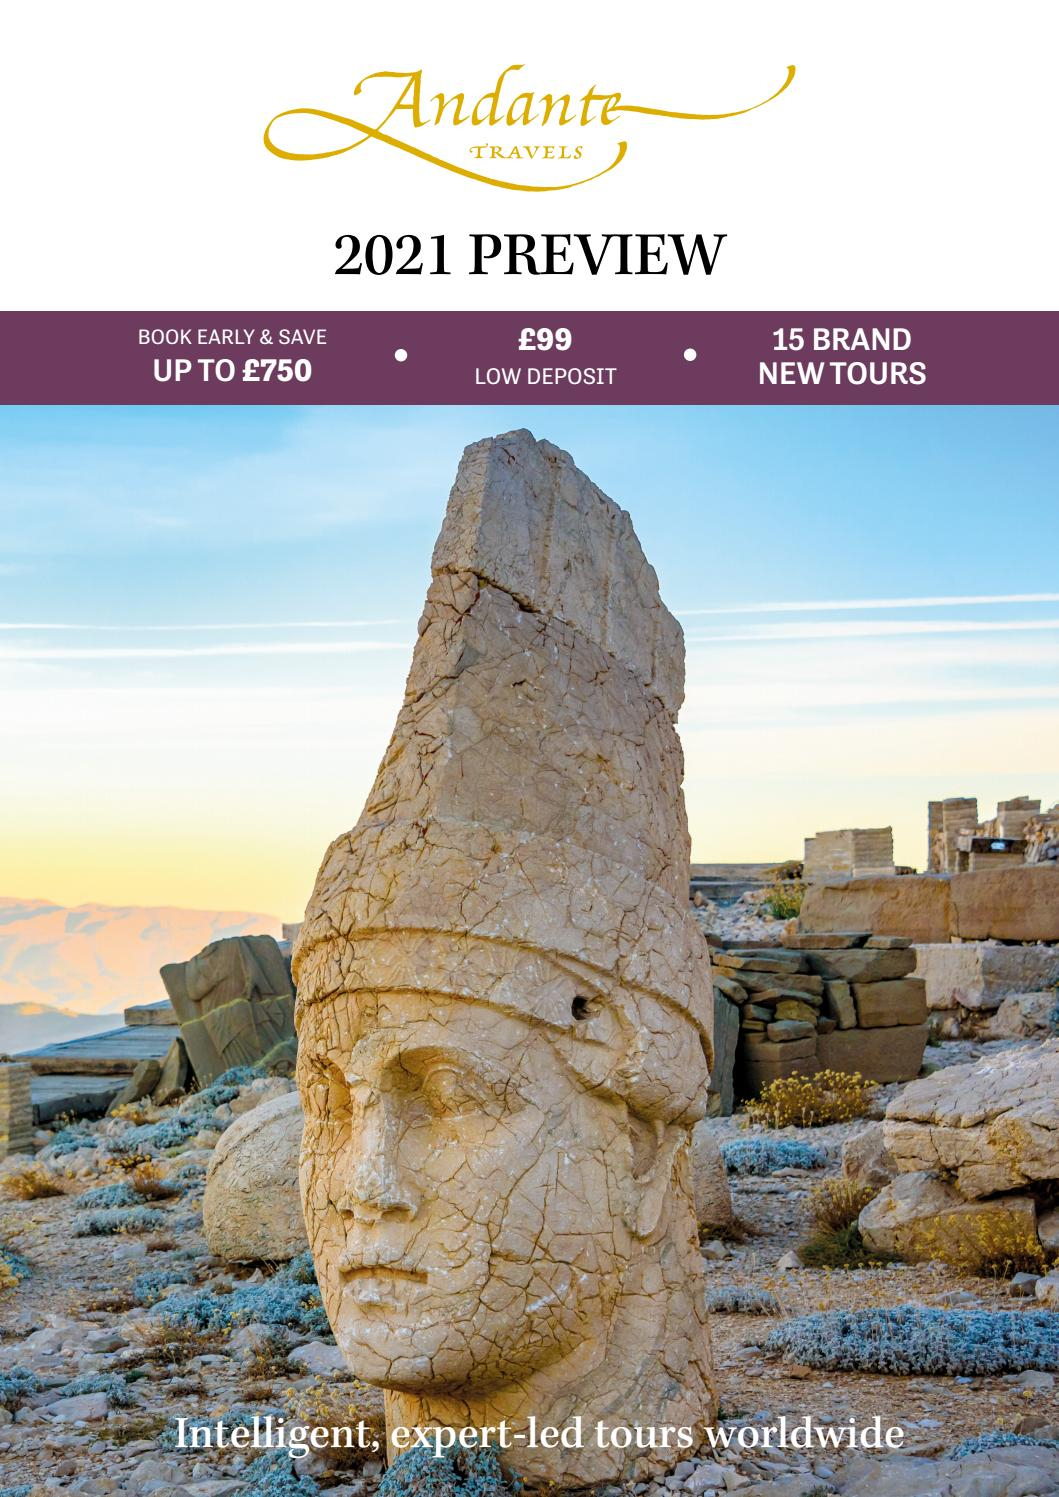 Andante Travels - 2021 Preview - Ukspecialist Journeys pertaining to Prehistoric Pocket Calendar 2021 With